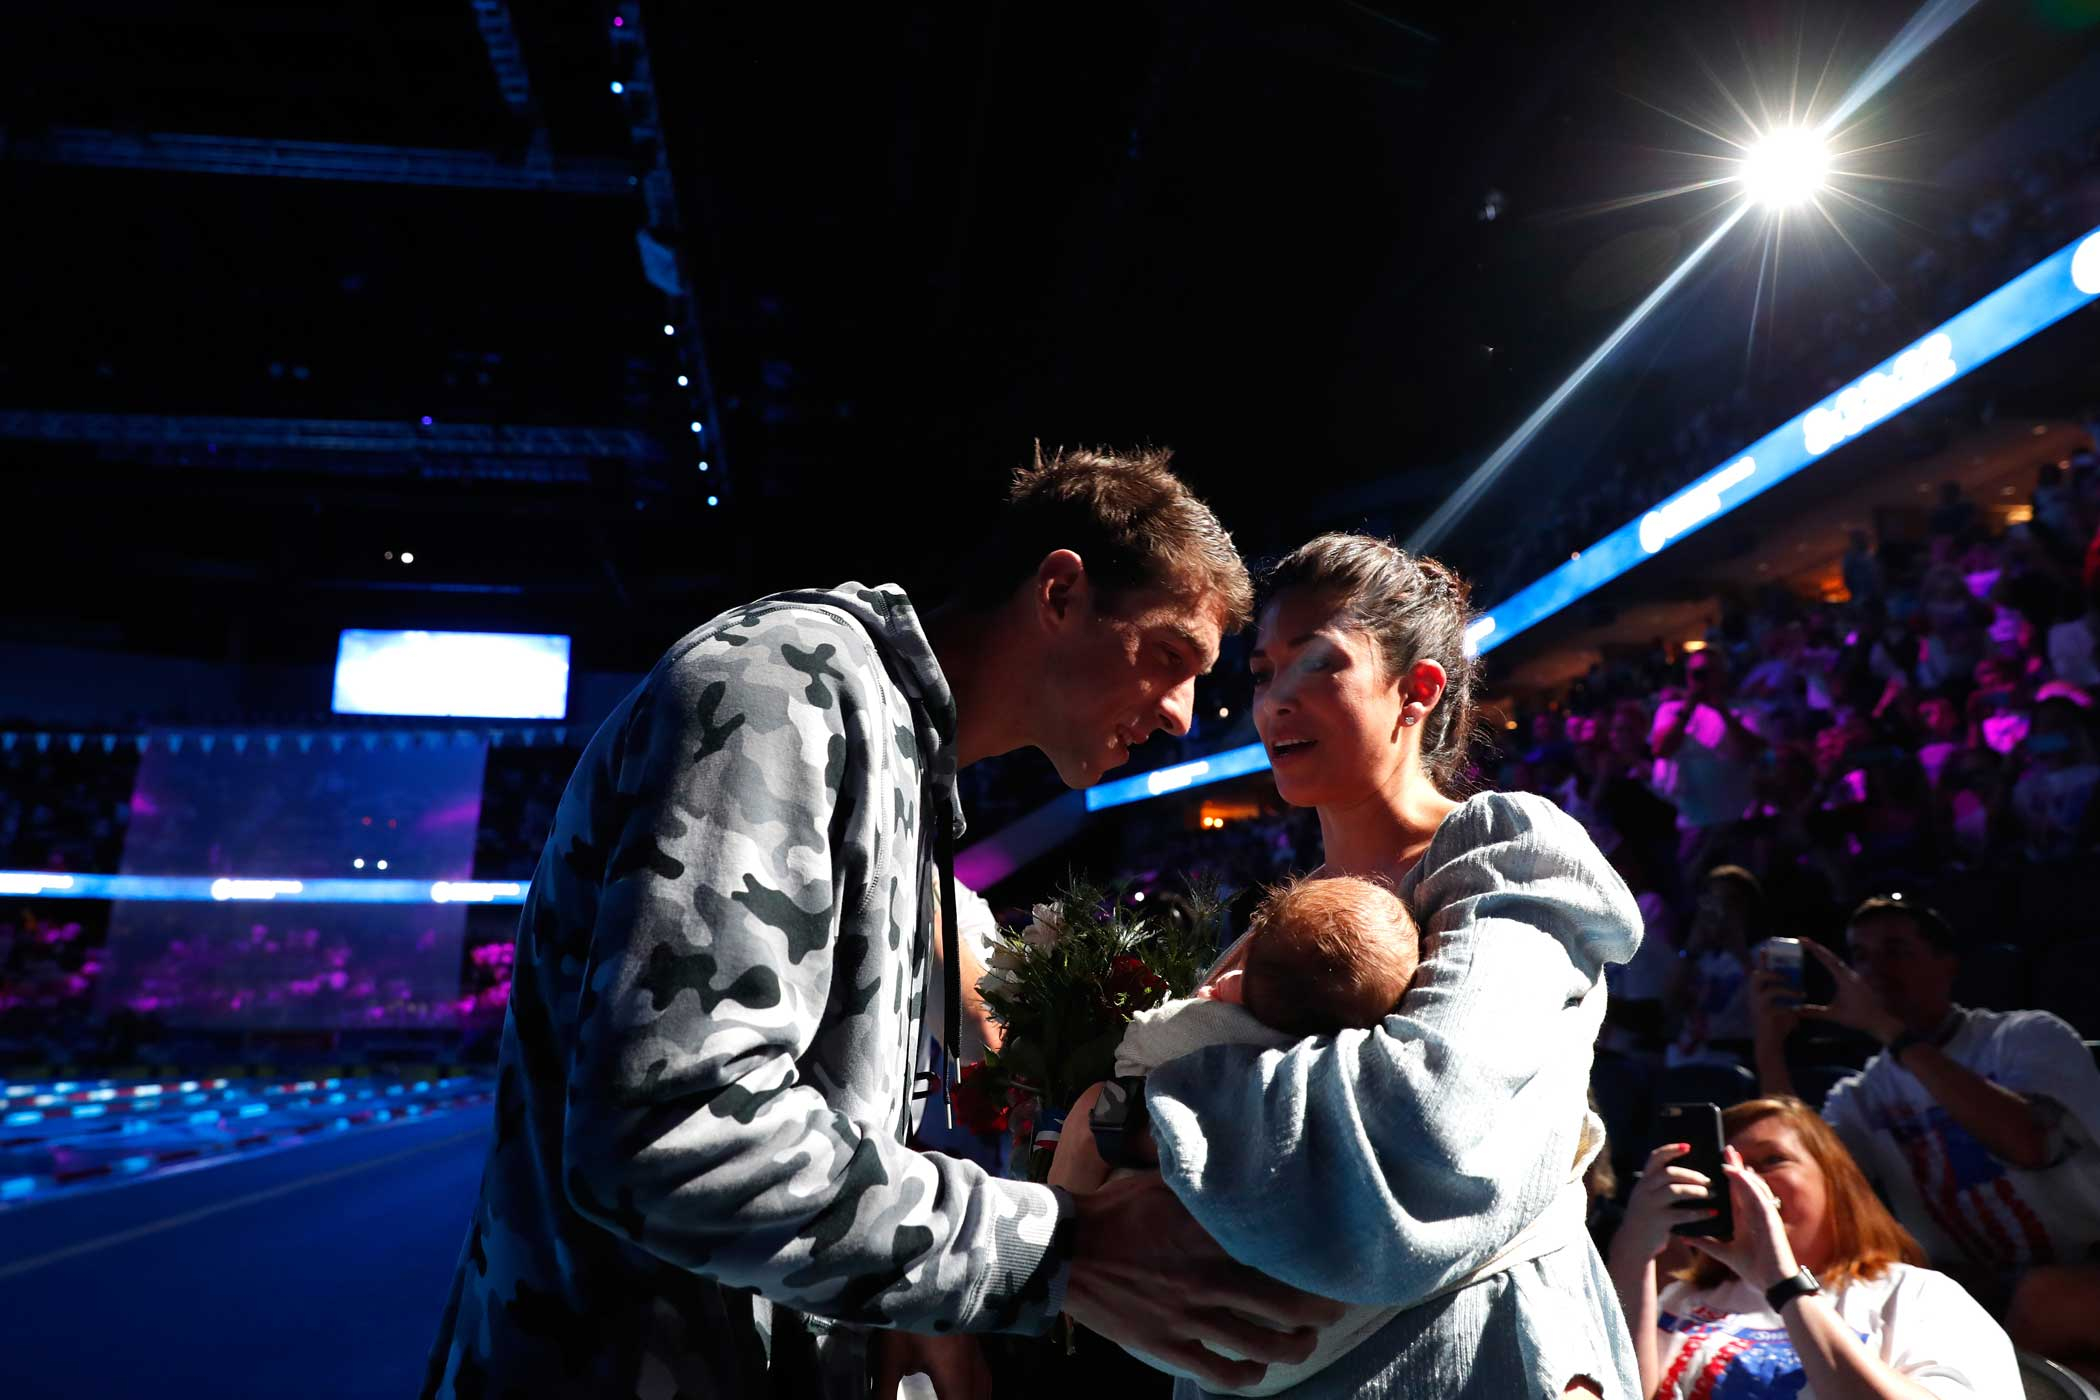 Phelps celebrates with his fiance and their son after finishing first in the final heat for the Men's 200 Meter Individual Medley during the Olympic Trials on July 1, 2016.